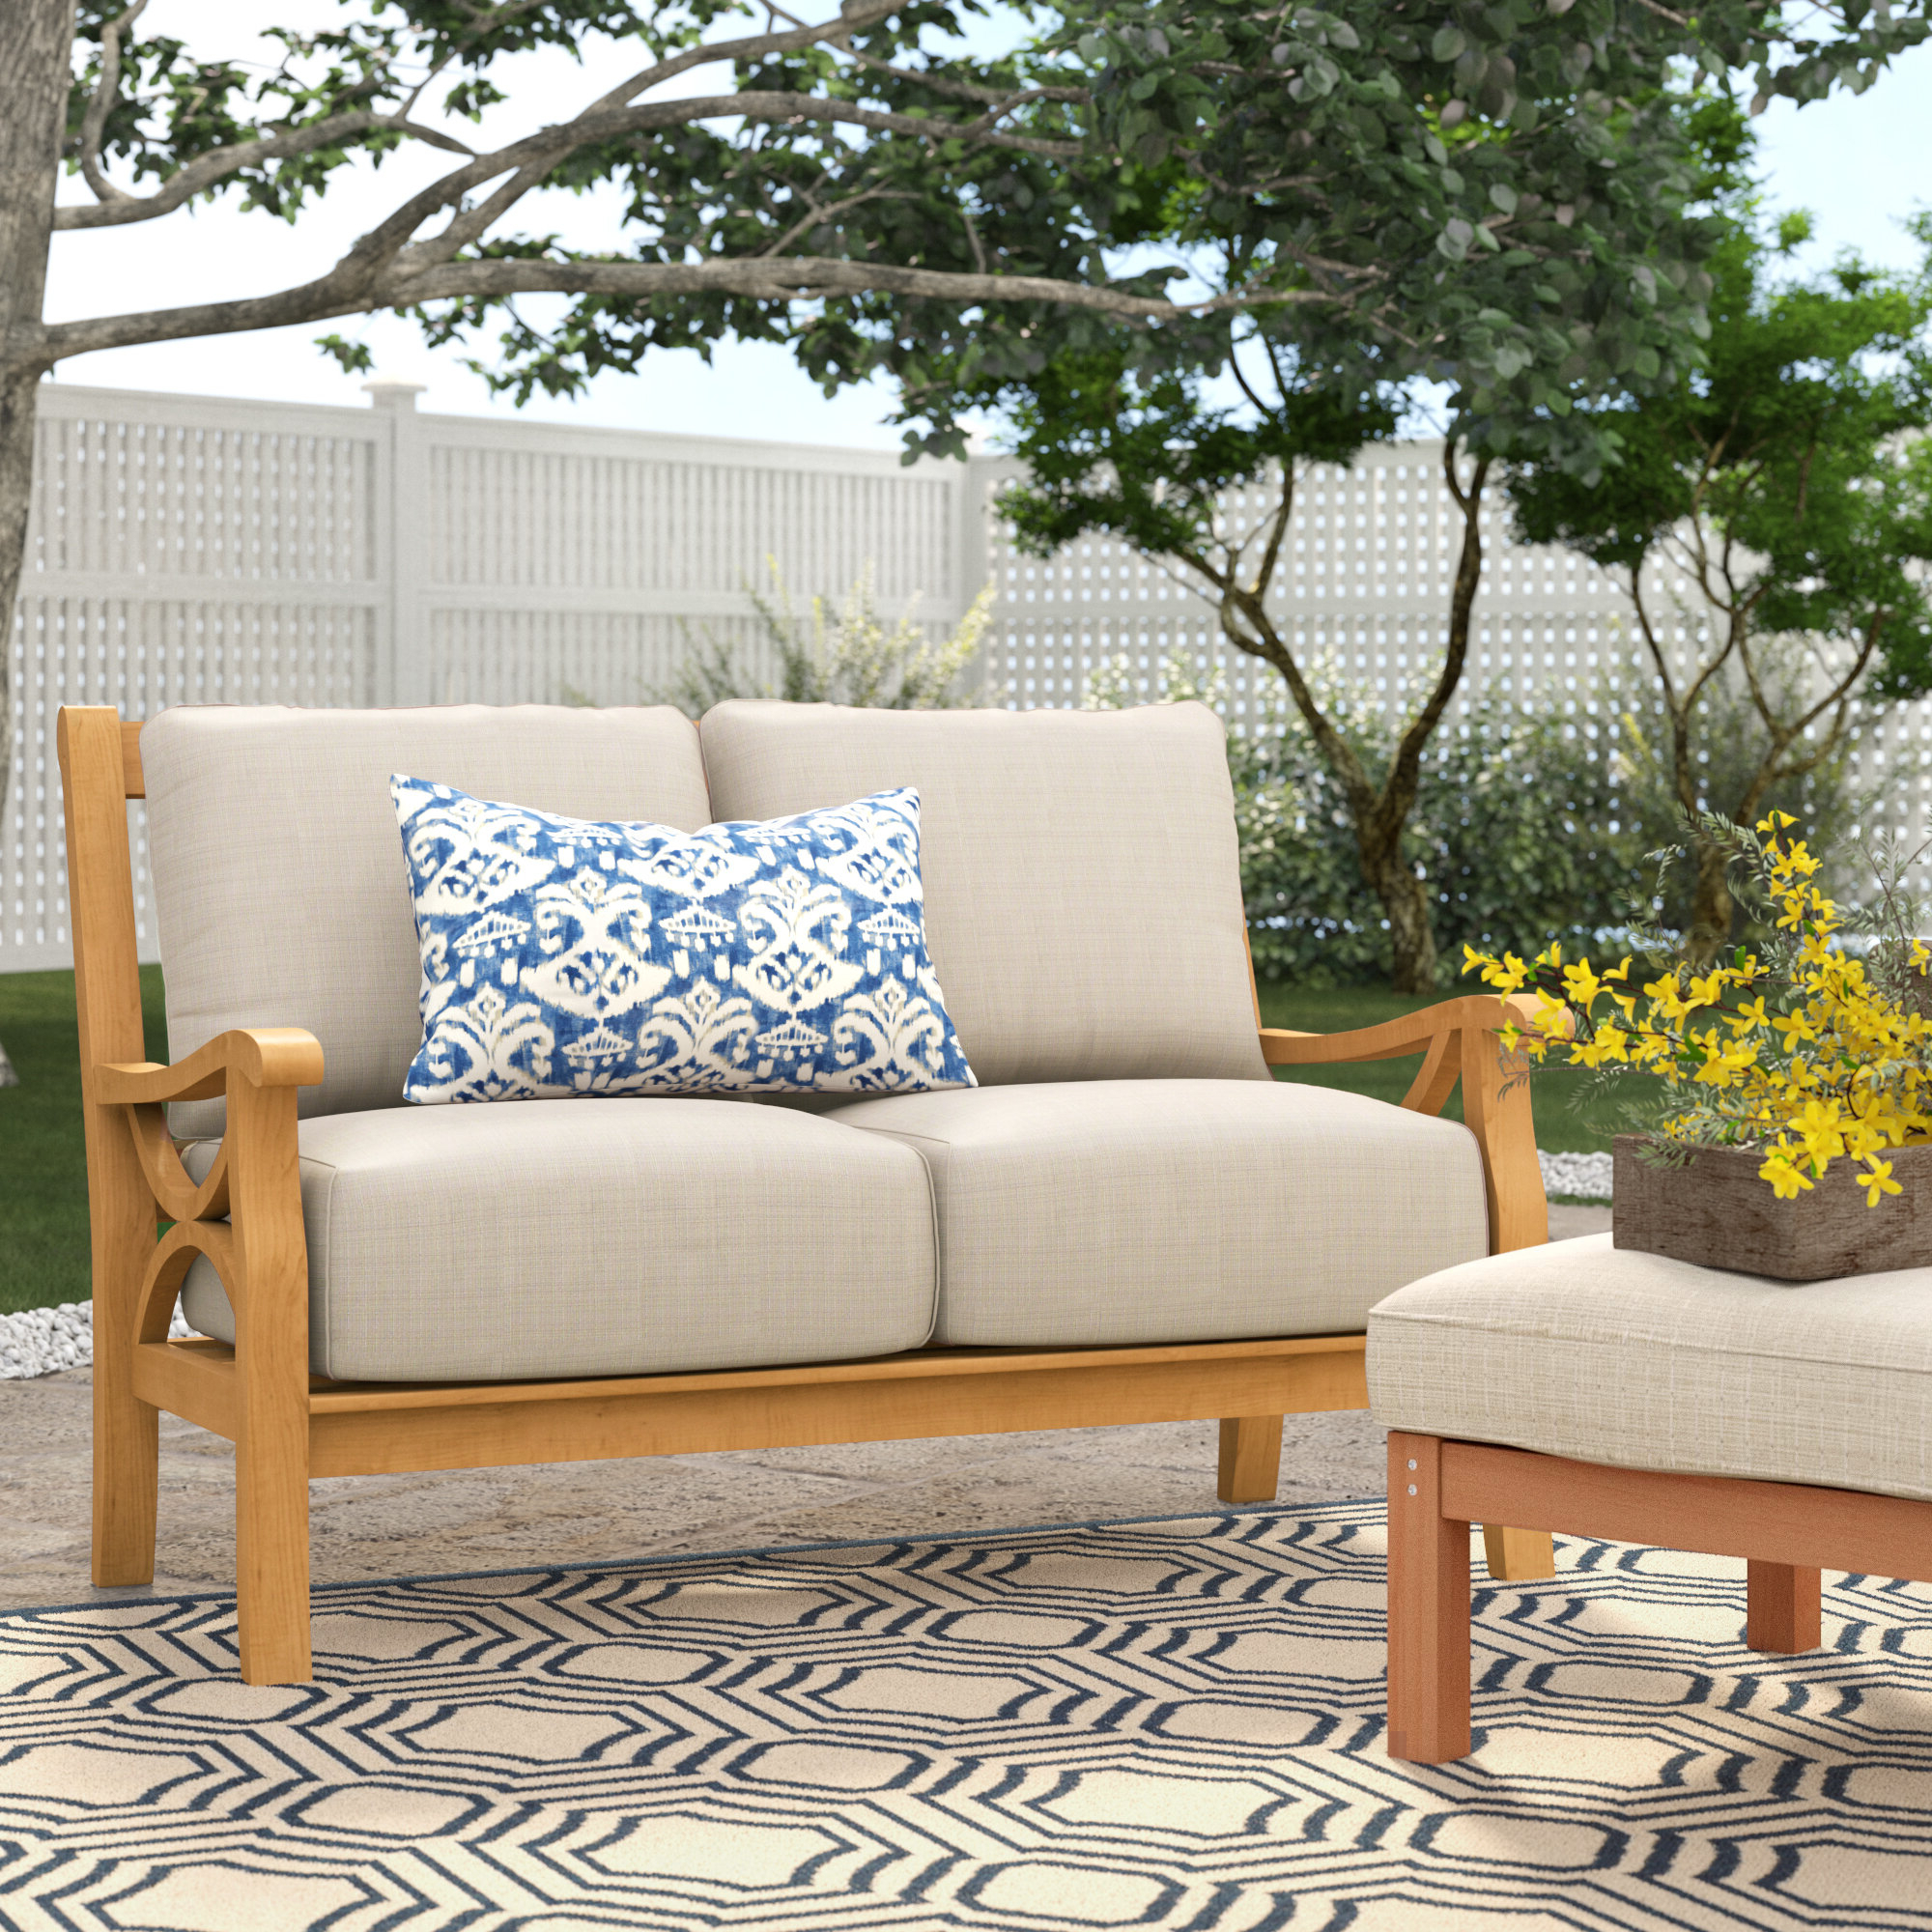 Brunswick Teak Patio Sofas With Cushions Regarding Favorite Brunswick Teak Loveseat With Cushions (View 10 of 25)